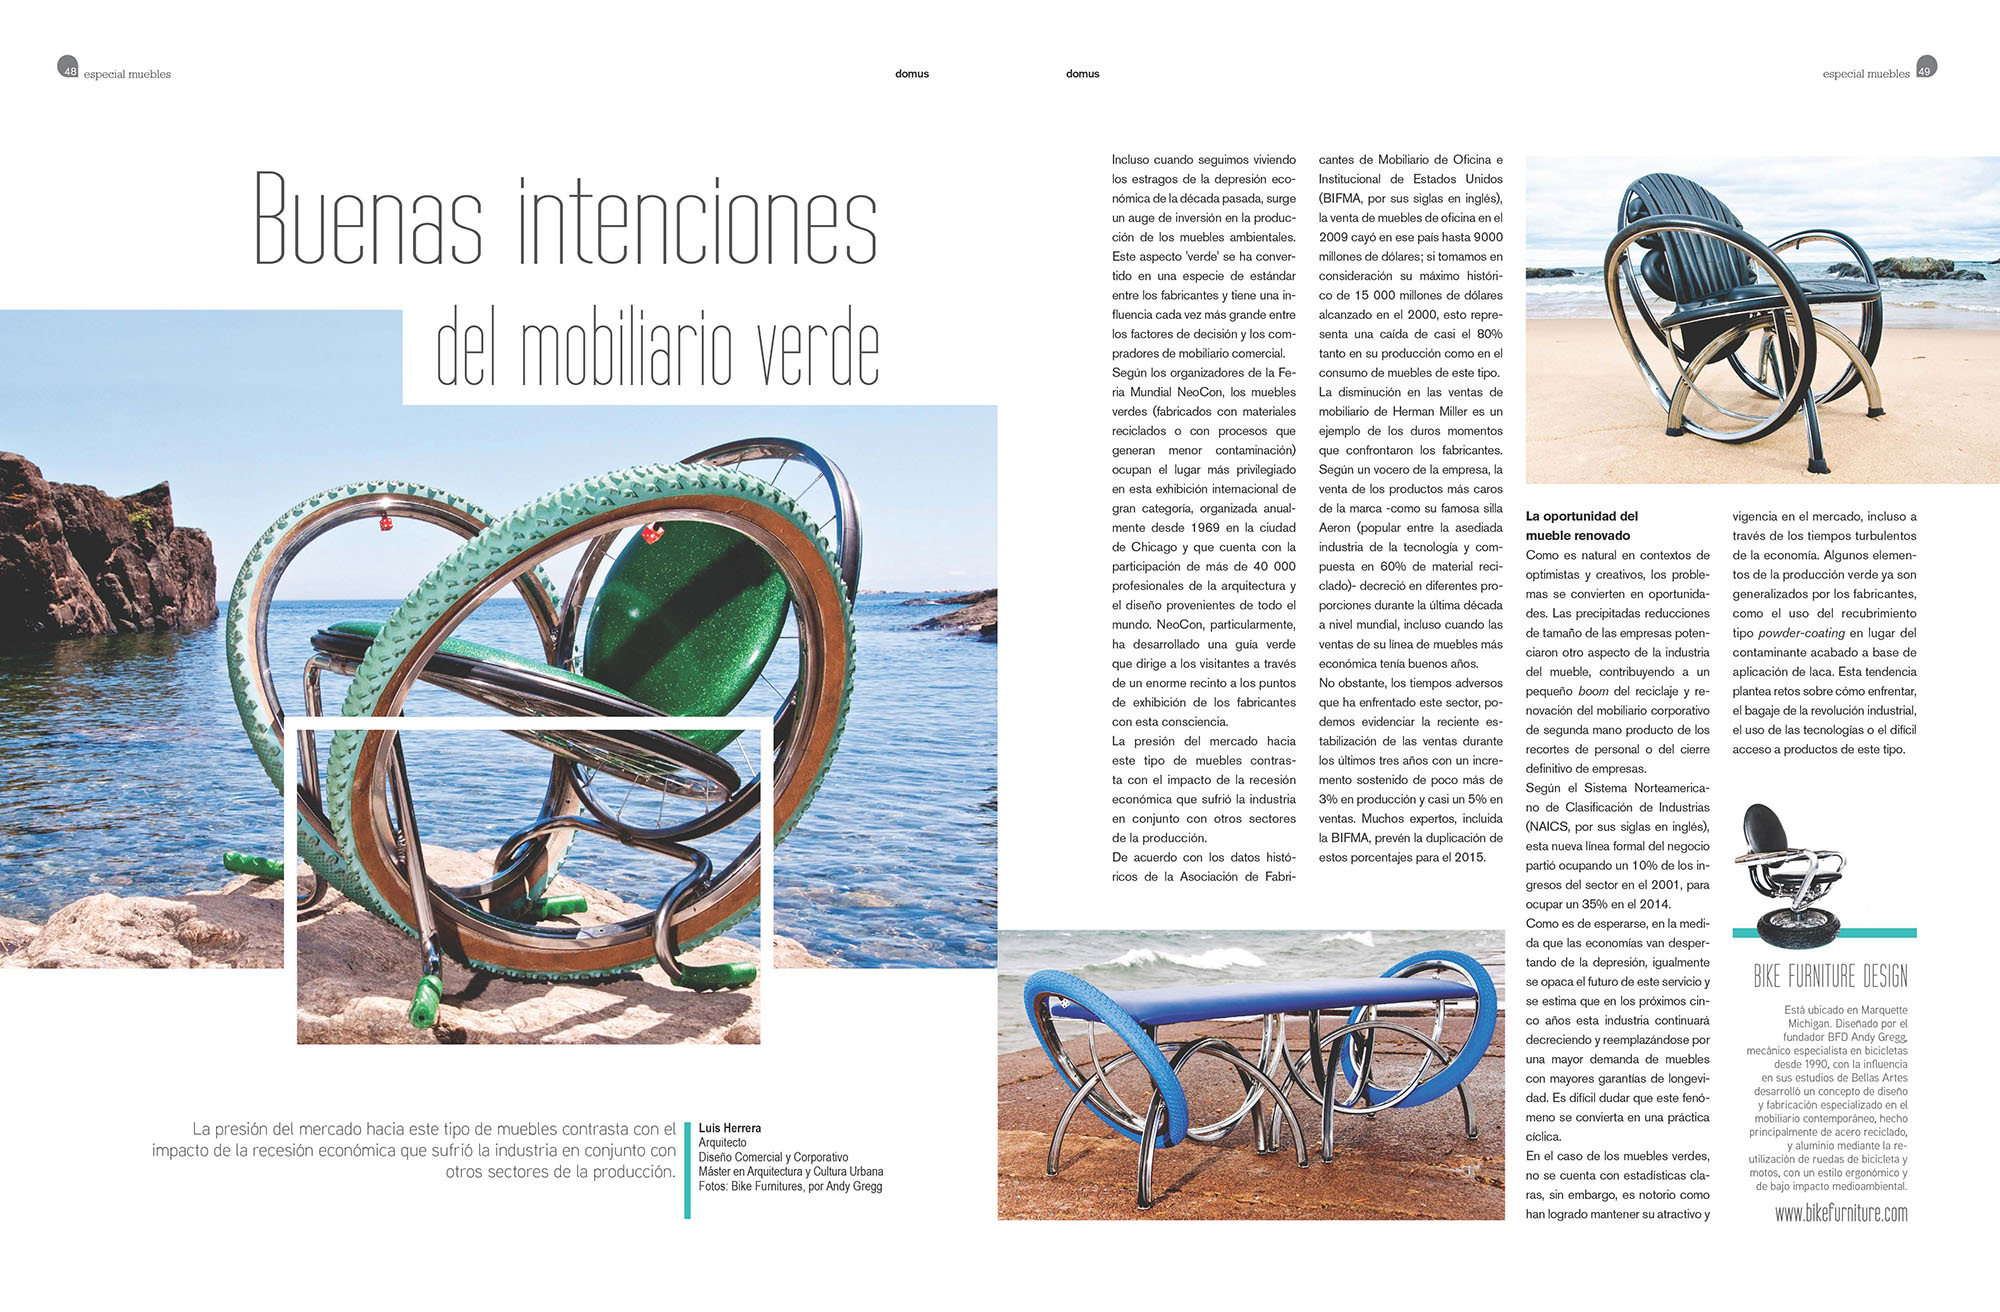 Latin American version of the Italian magazine Domus giving us some  Press